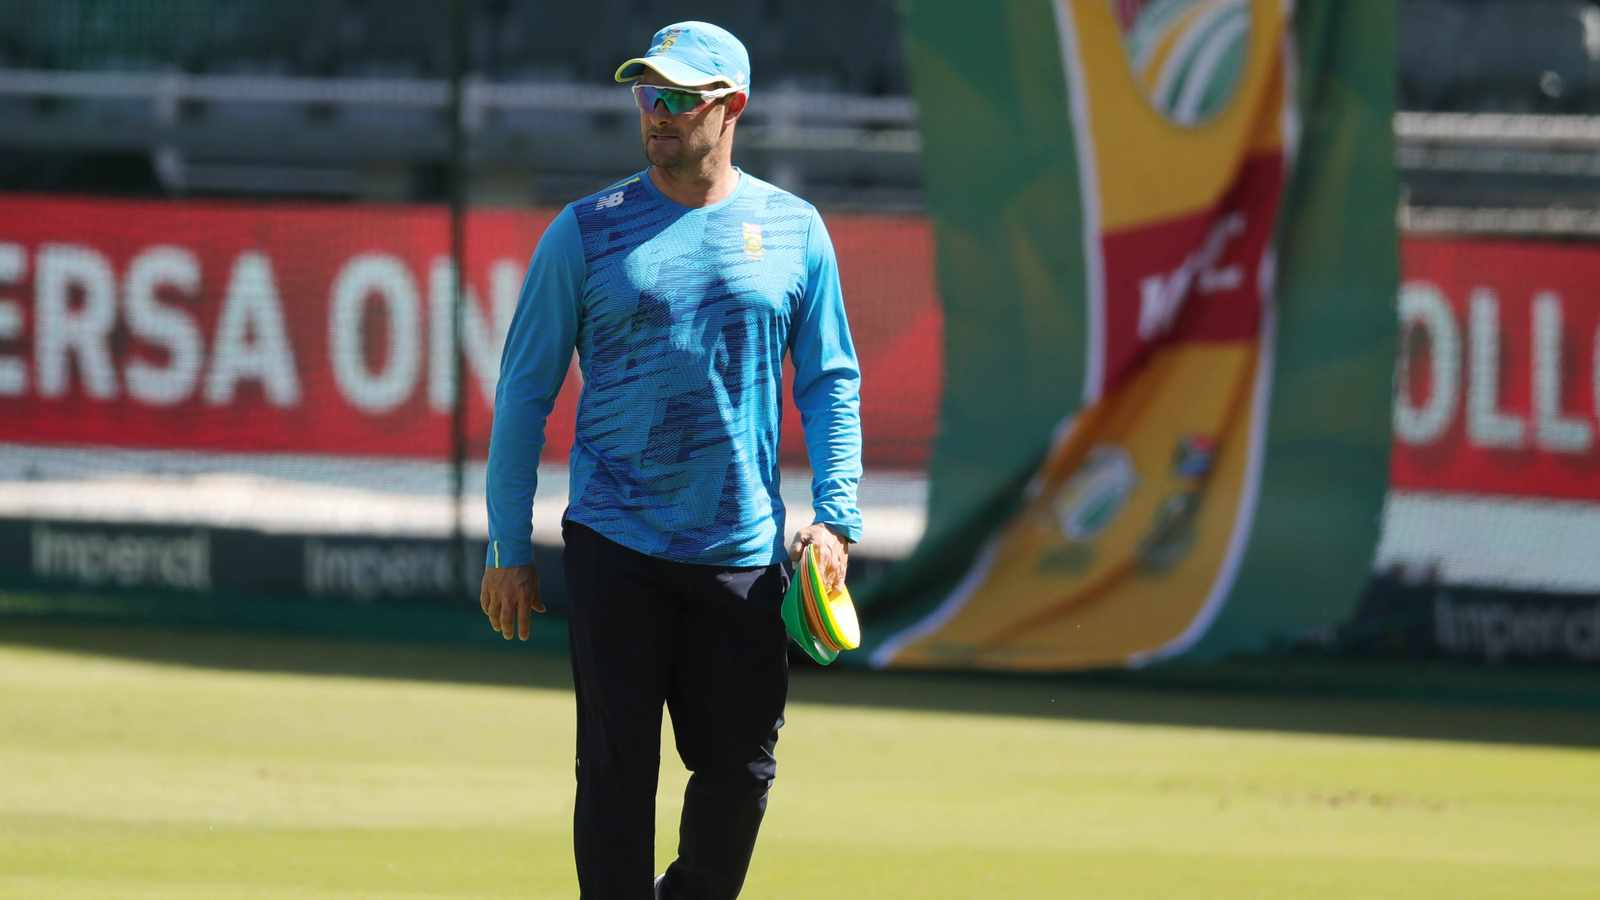 Mark Boucher, coach of South Africa during the 2021 KFC T20 match between South Africa and Pakistan at Wanderers Stadium,Johannesburg, on 12 April 2021 ©Samuel Shivambu/BackpagePix